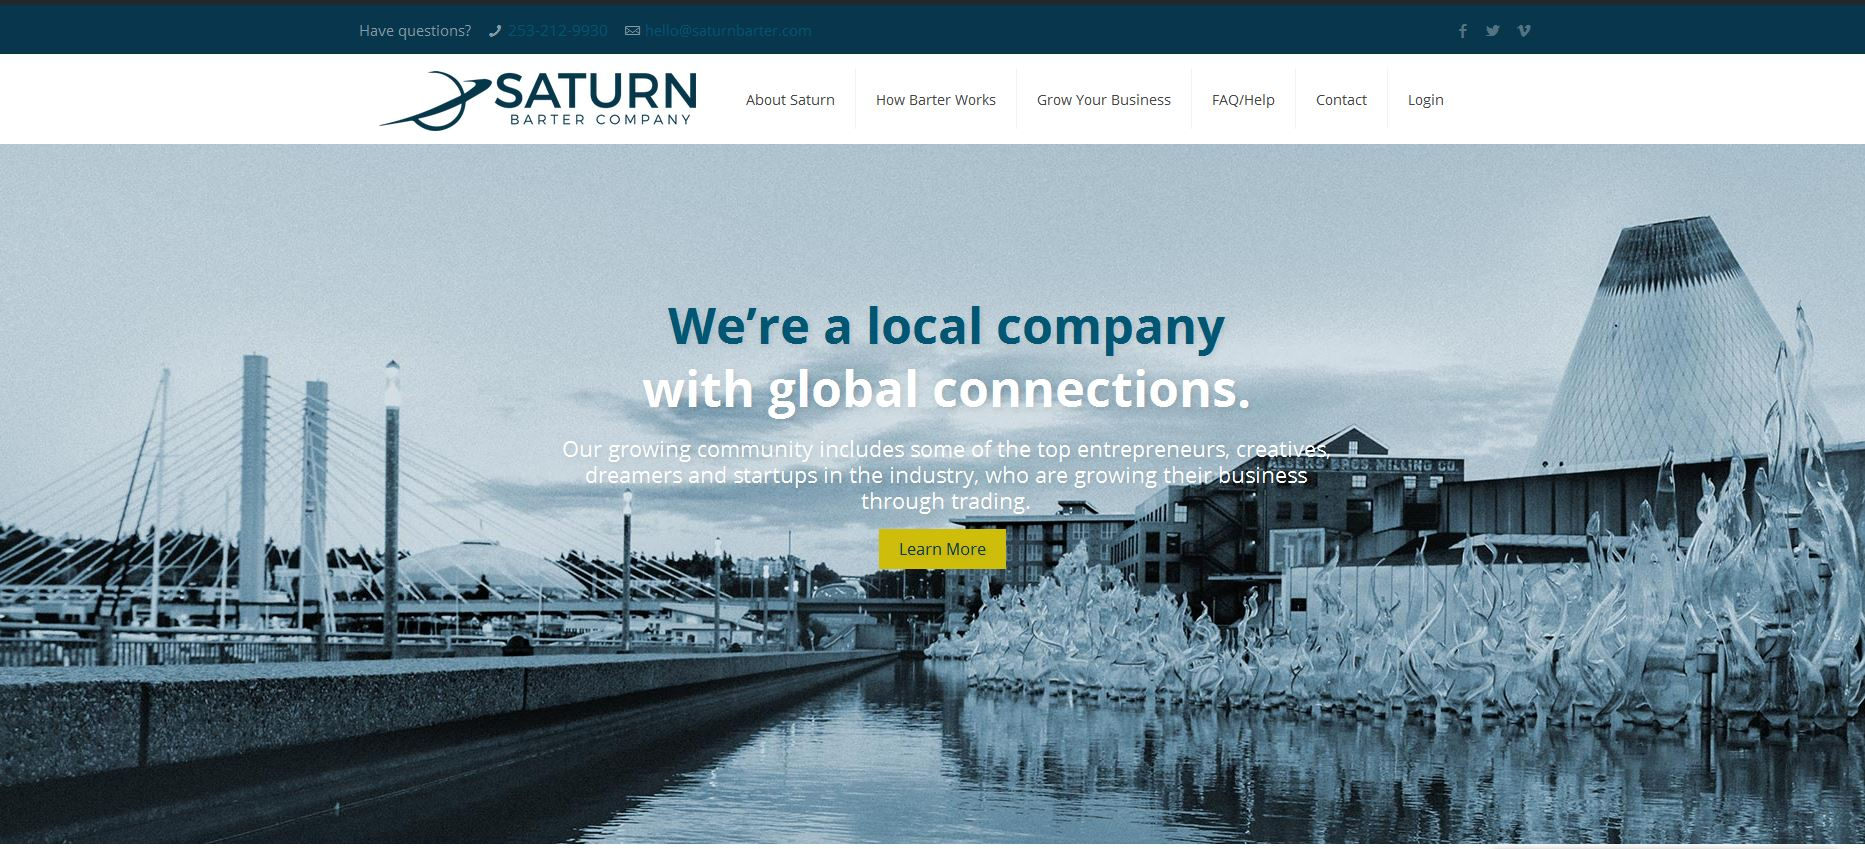 trouble logging in - Saturn Barter Company